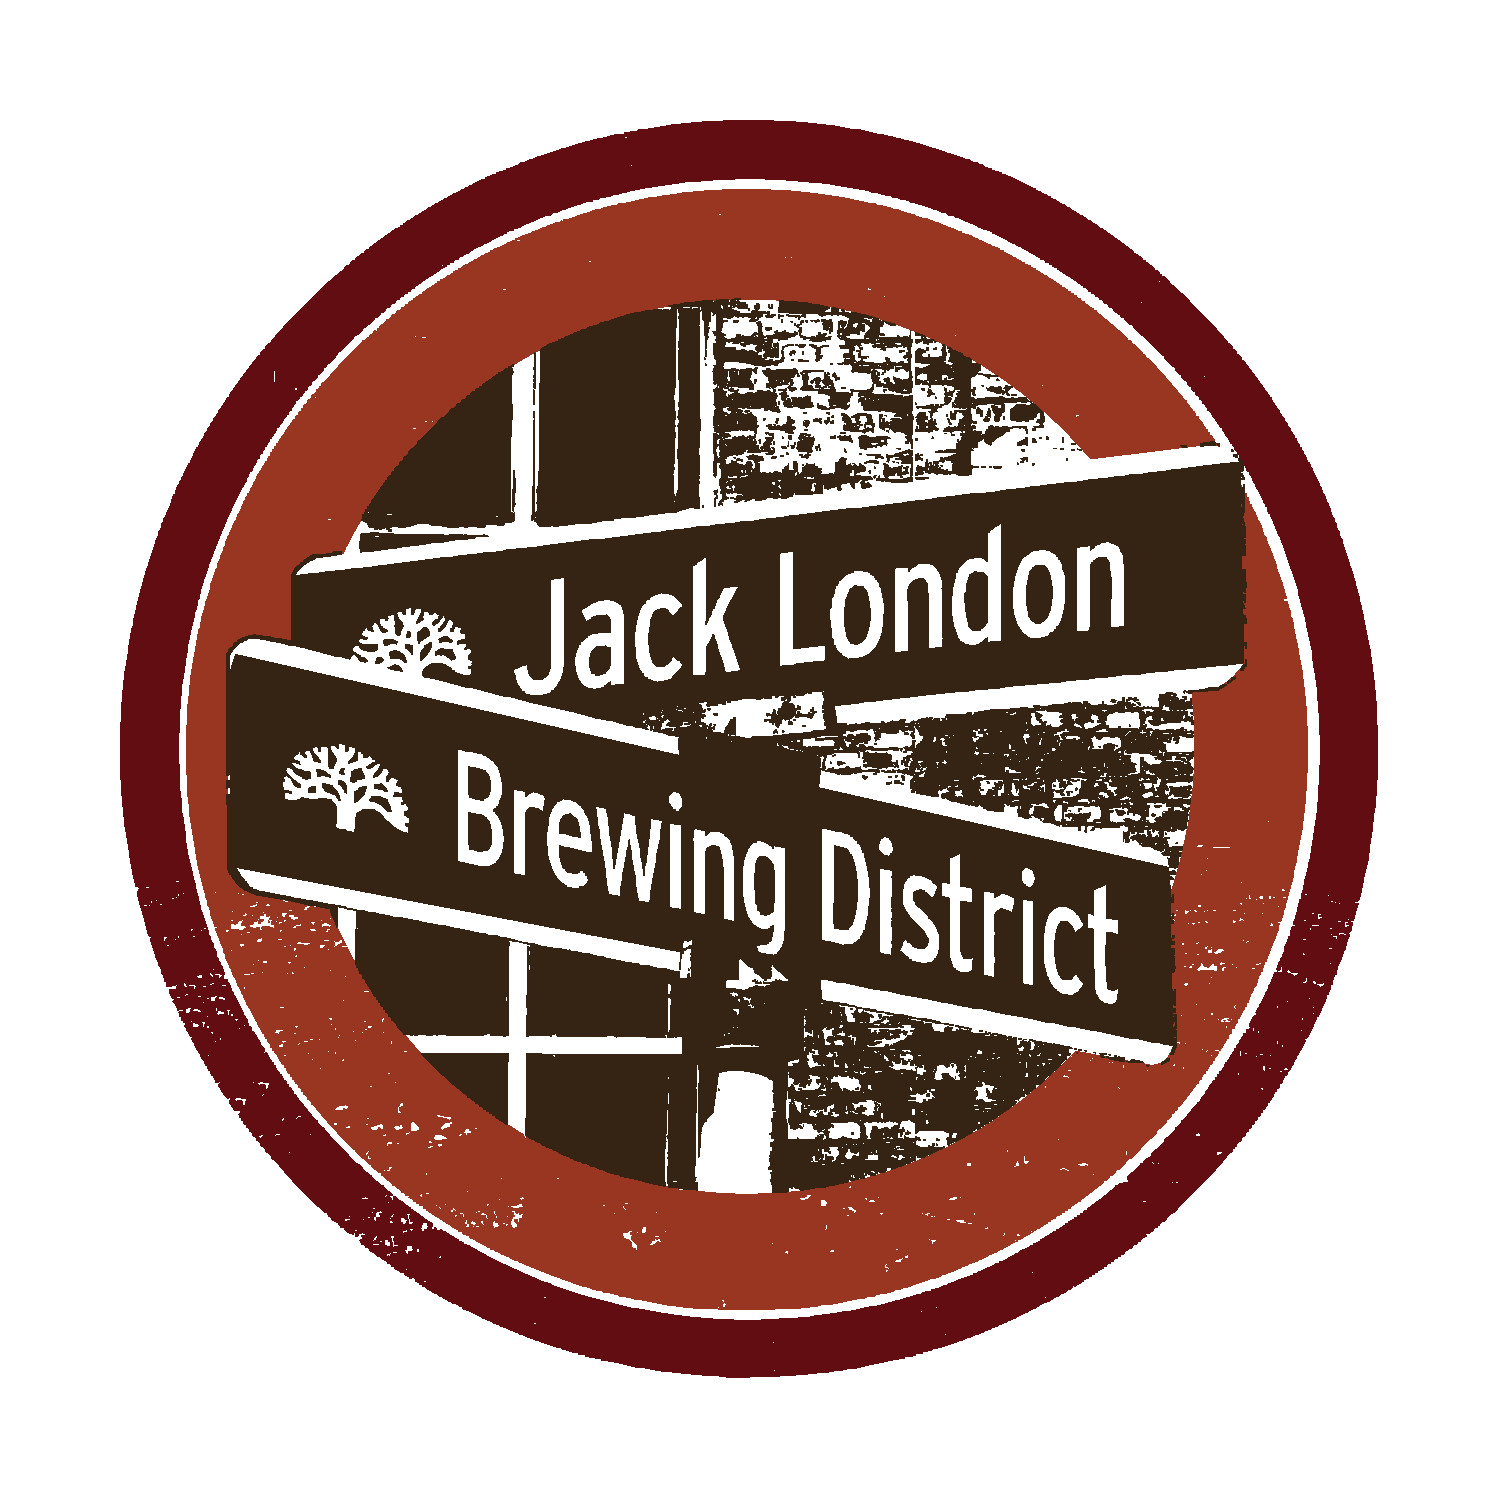 jack-london-brewing-district.png